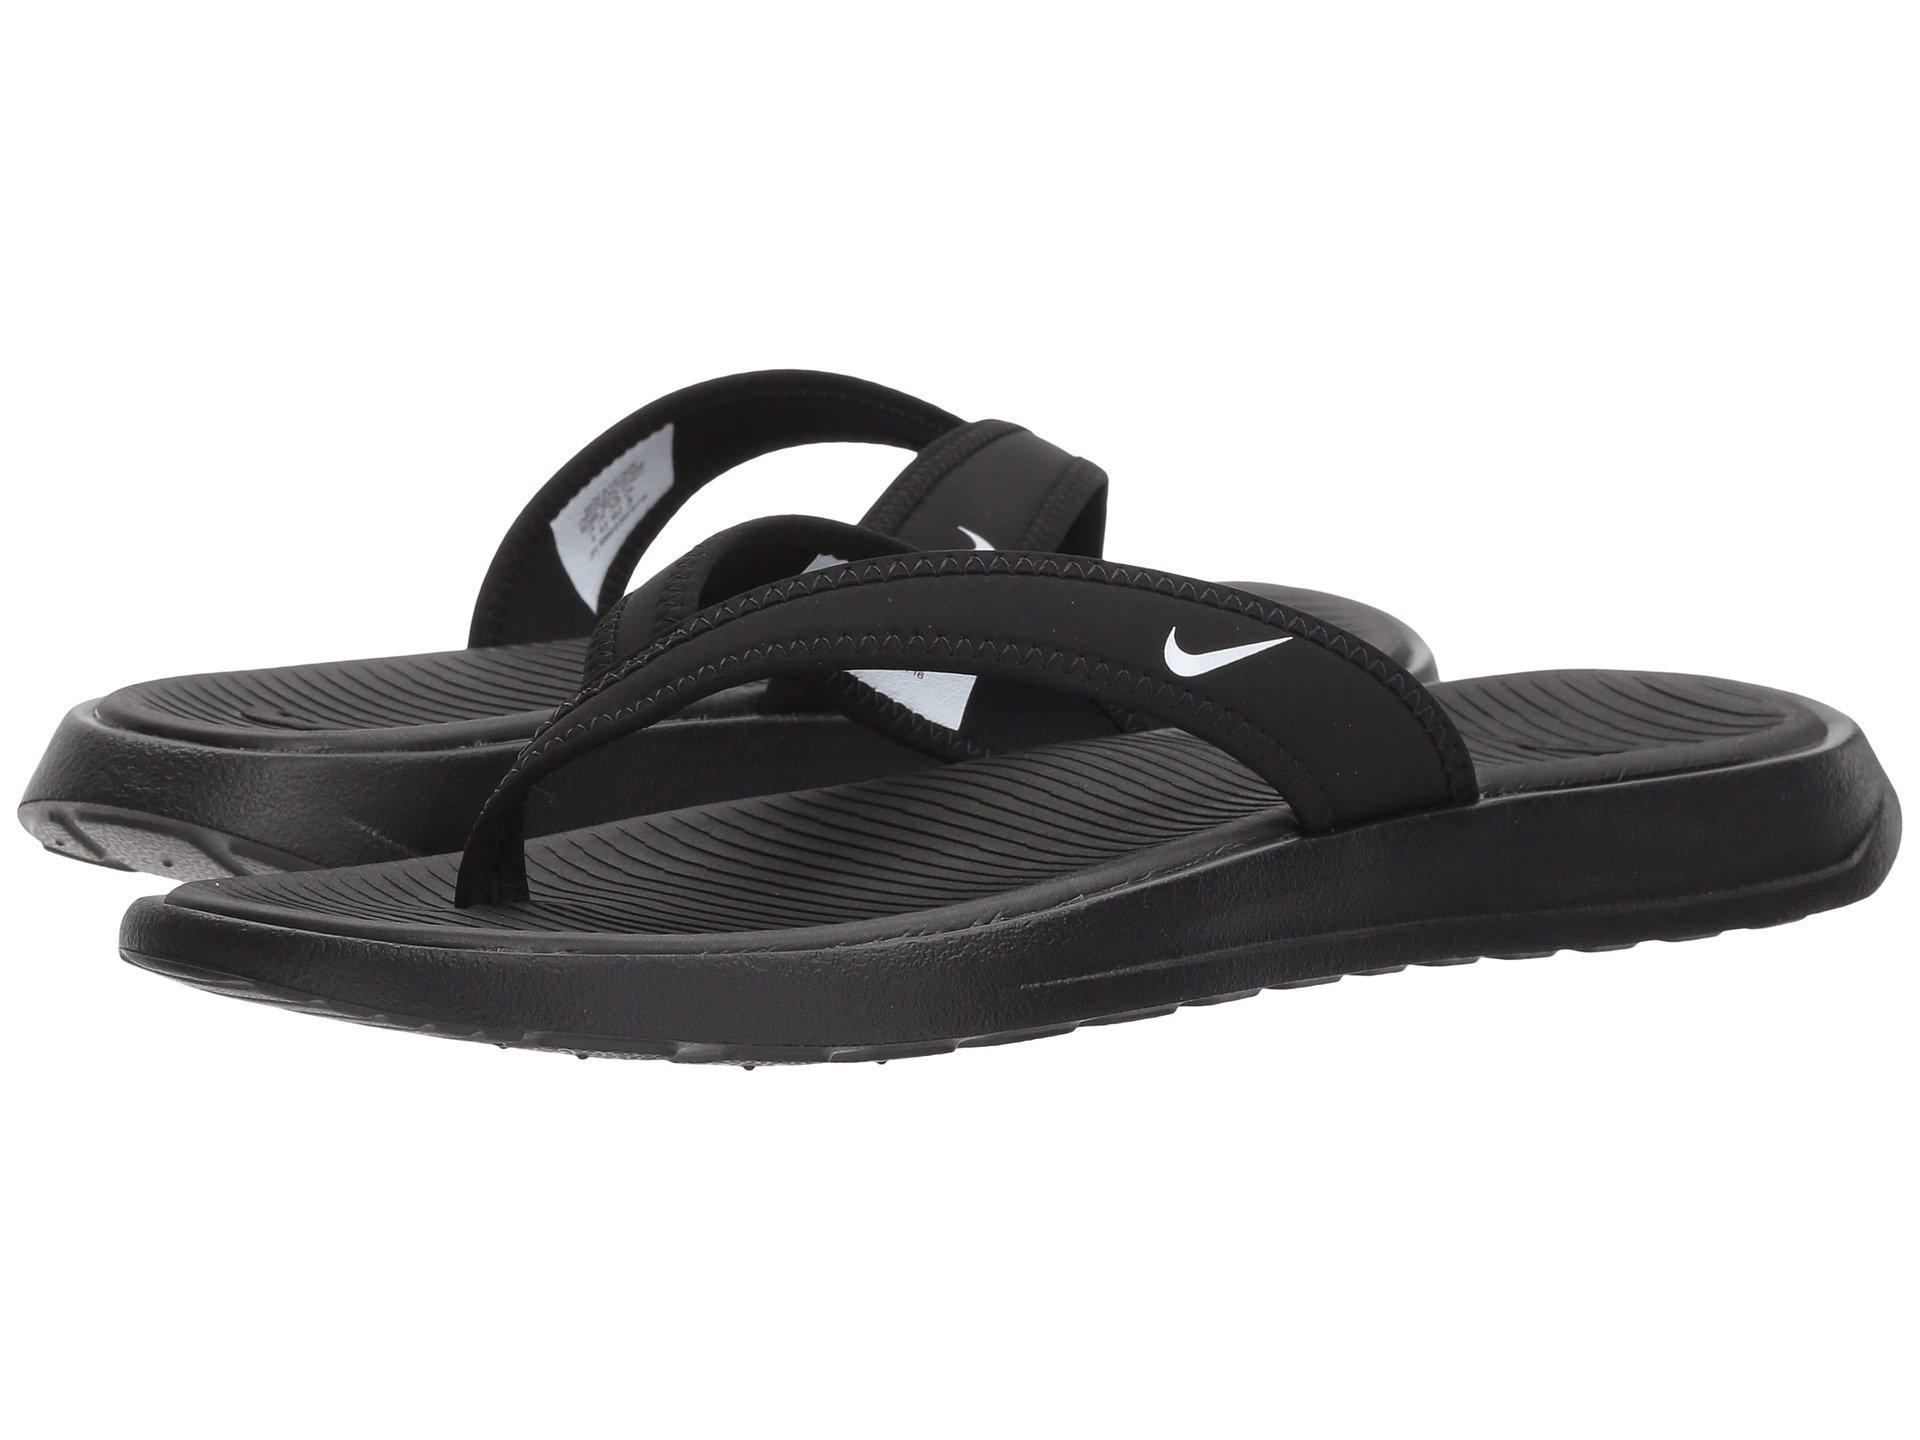 264546be7b9 Lyst - Nike Ultra Celso Thong Flip-flop in Black - Save 59%